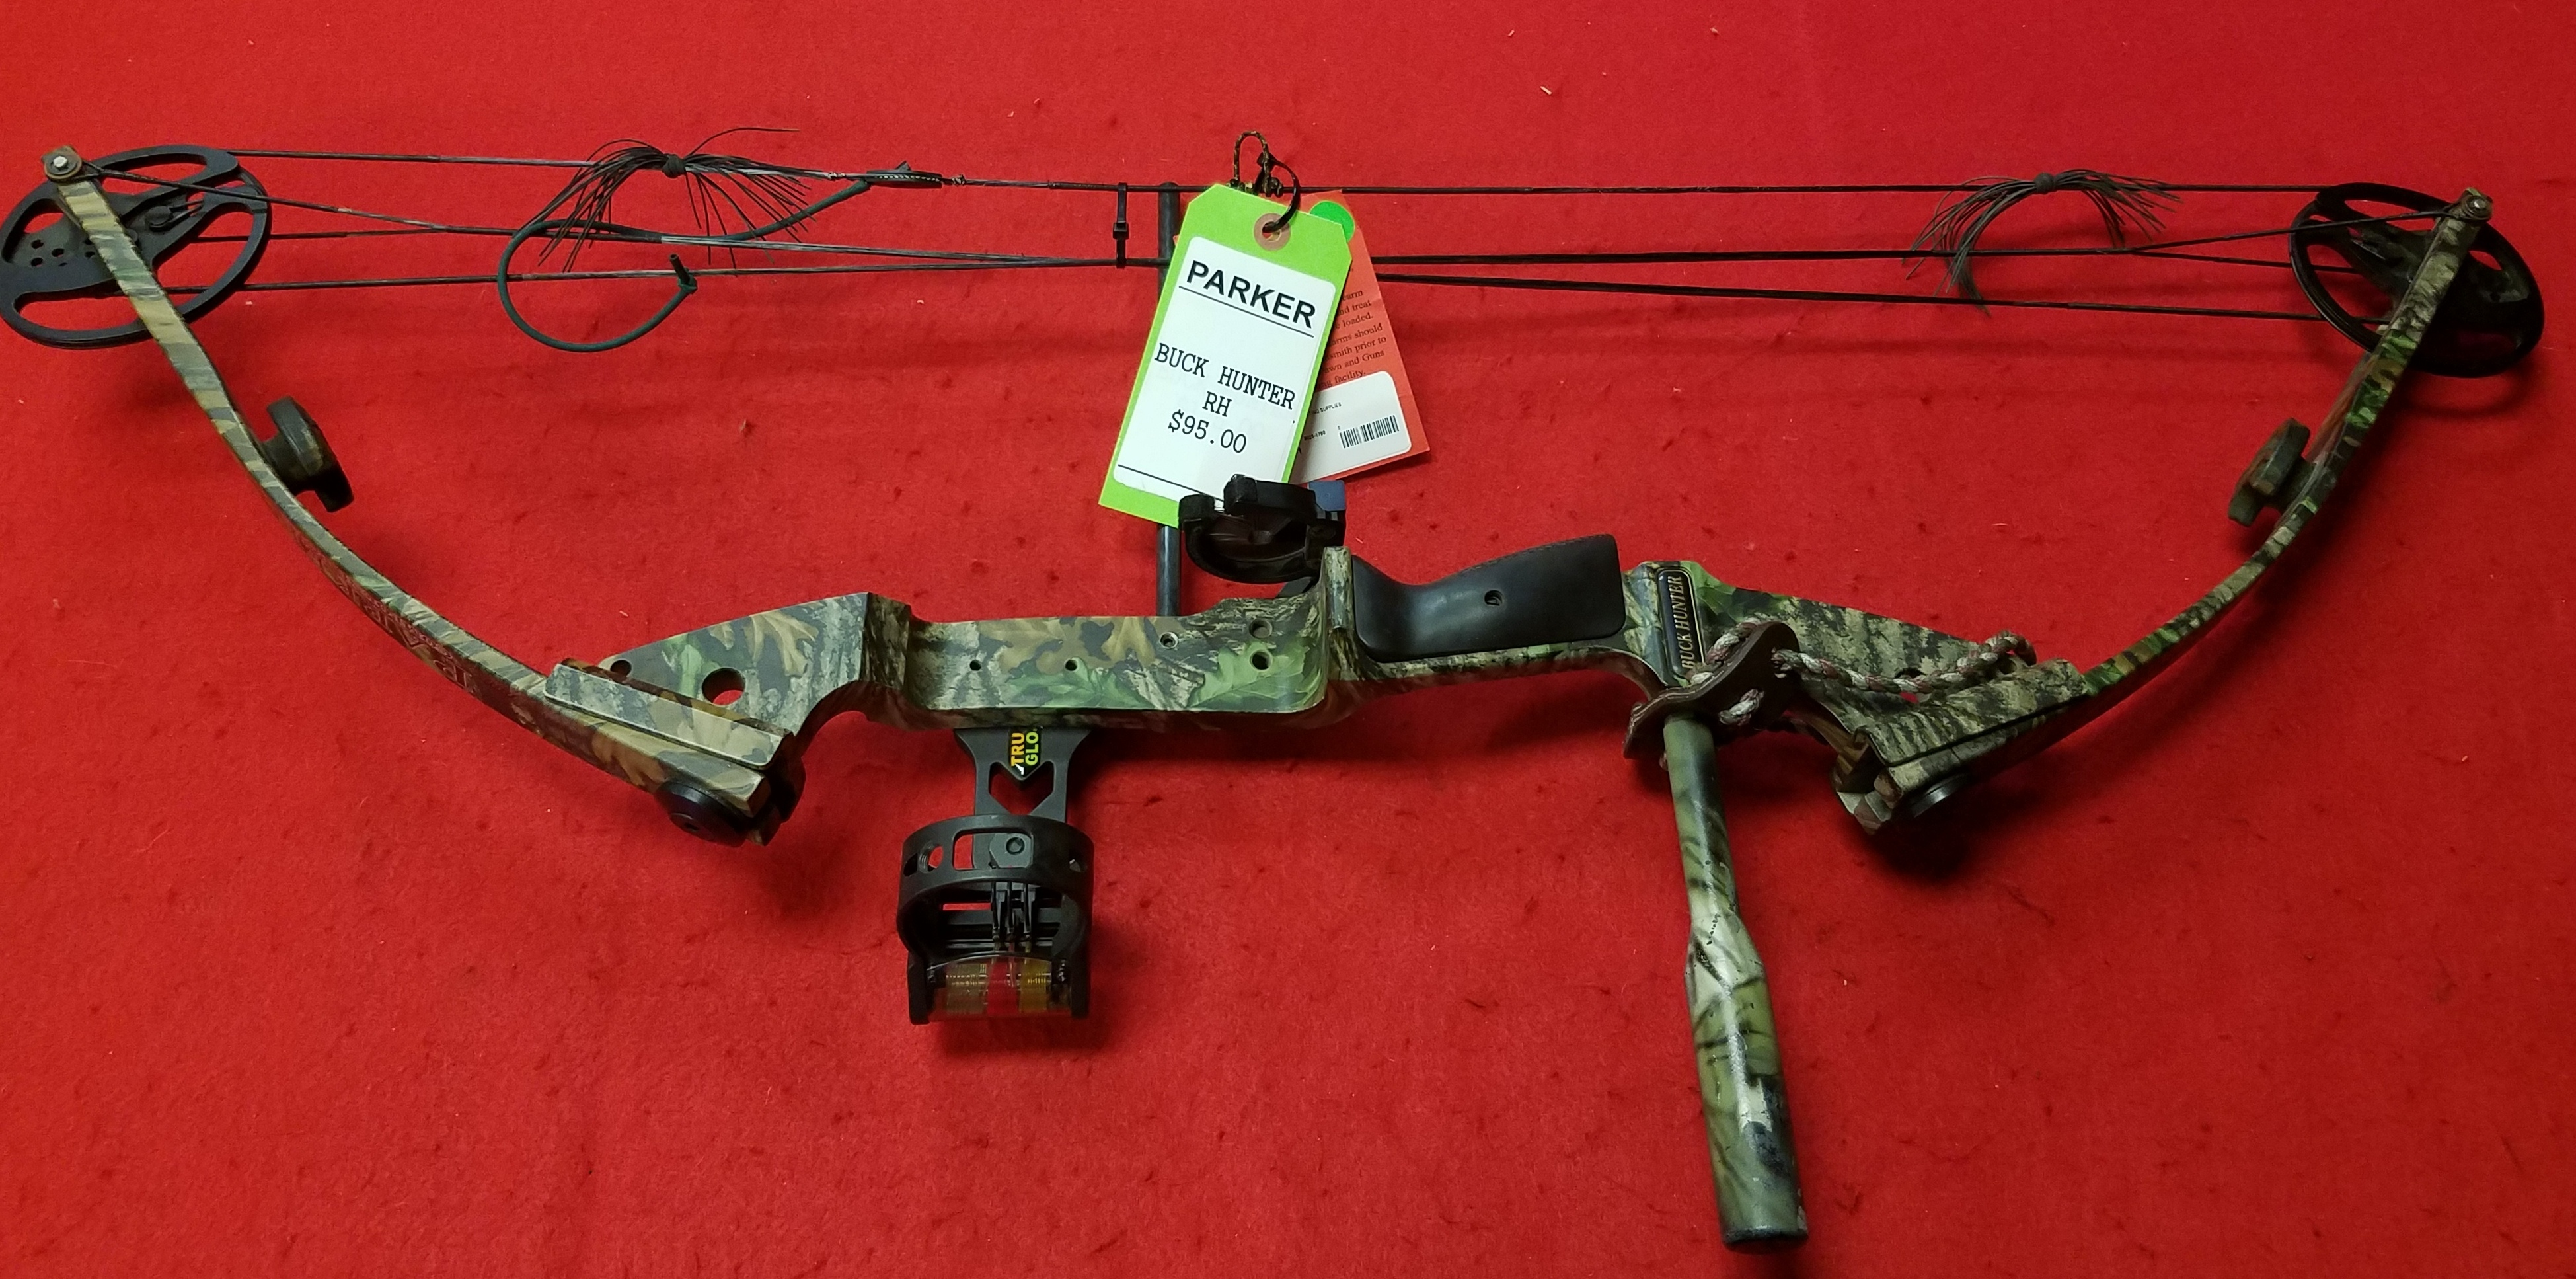 PARKER - BUCK HUNTER COMPOUND BOW